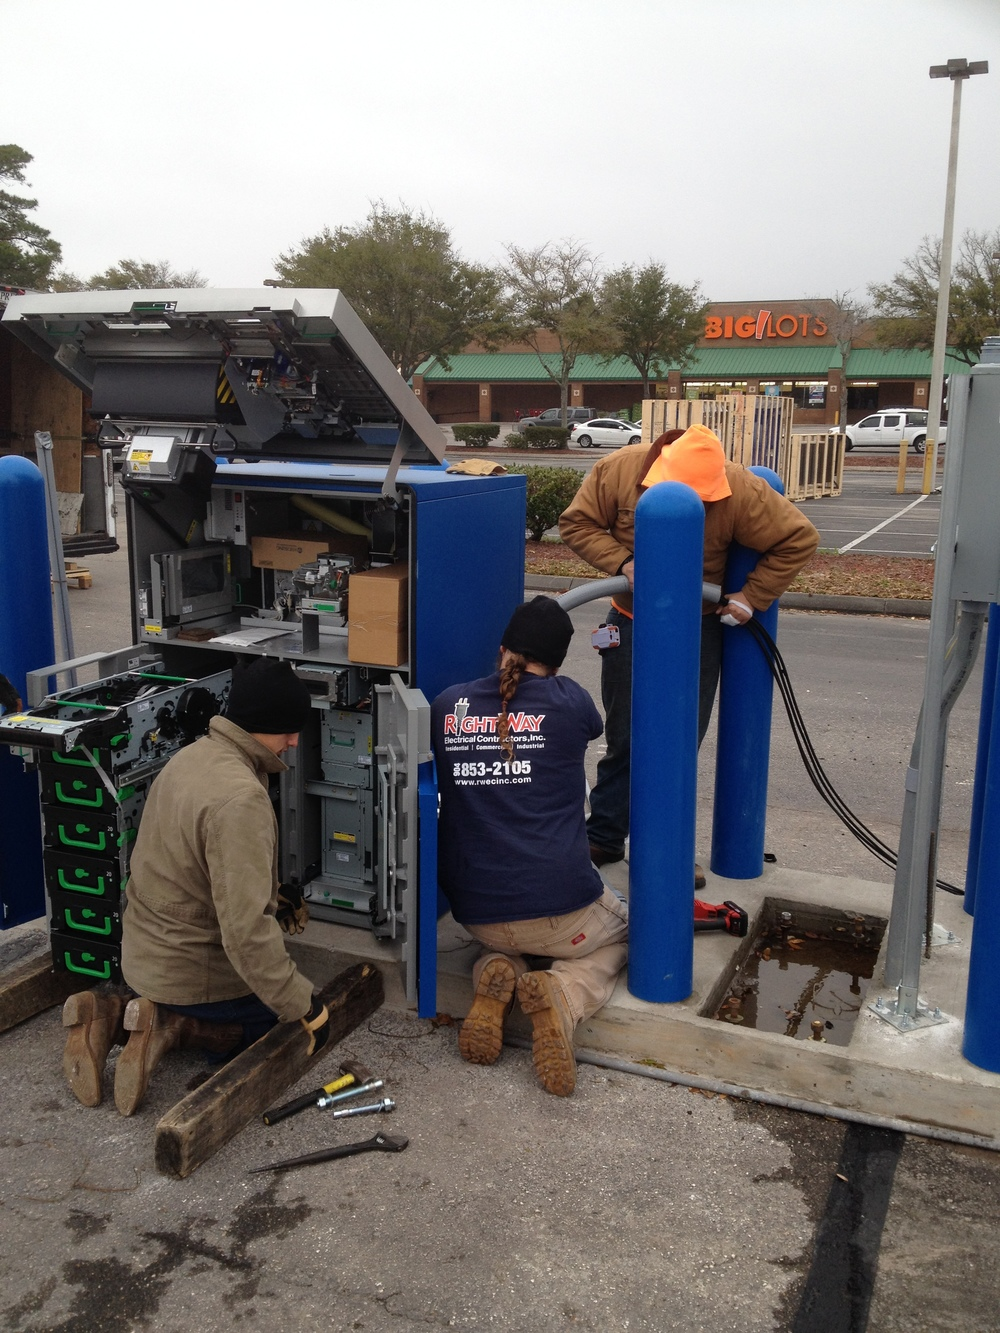 Drive-up ATM Installation (DURING)